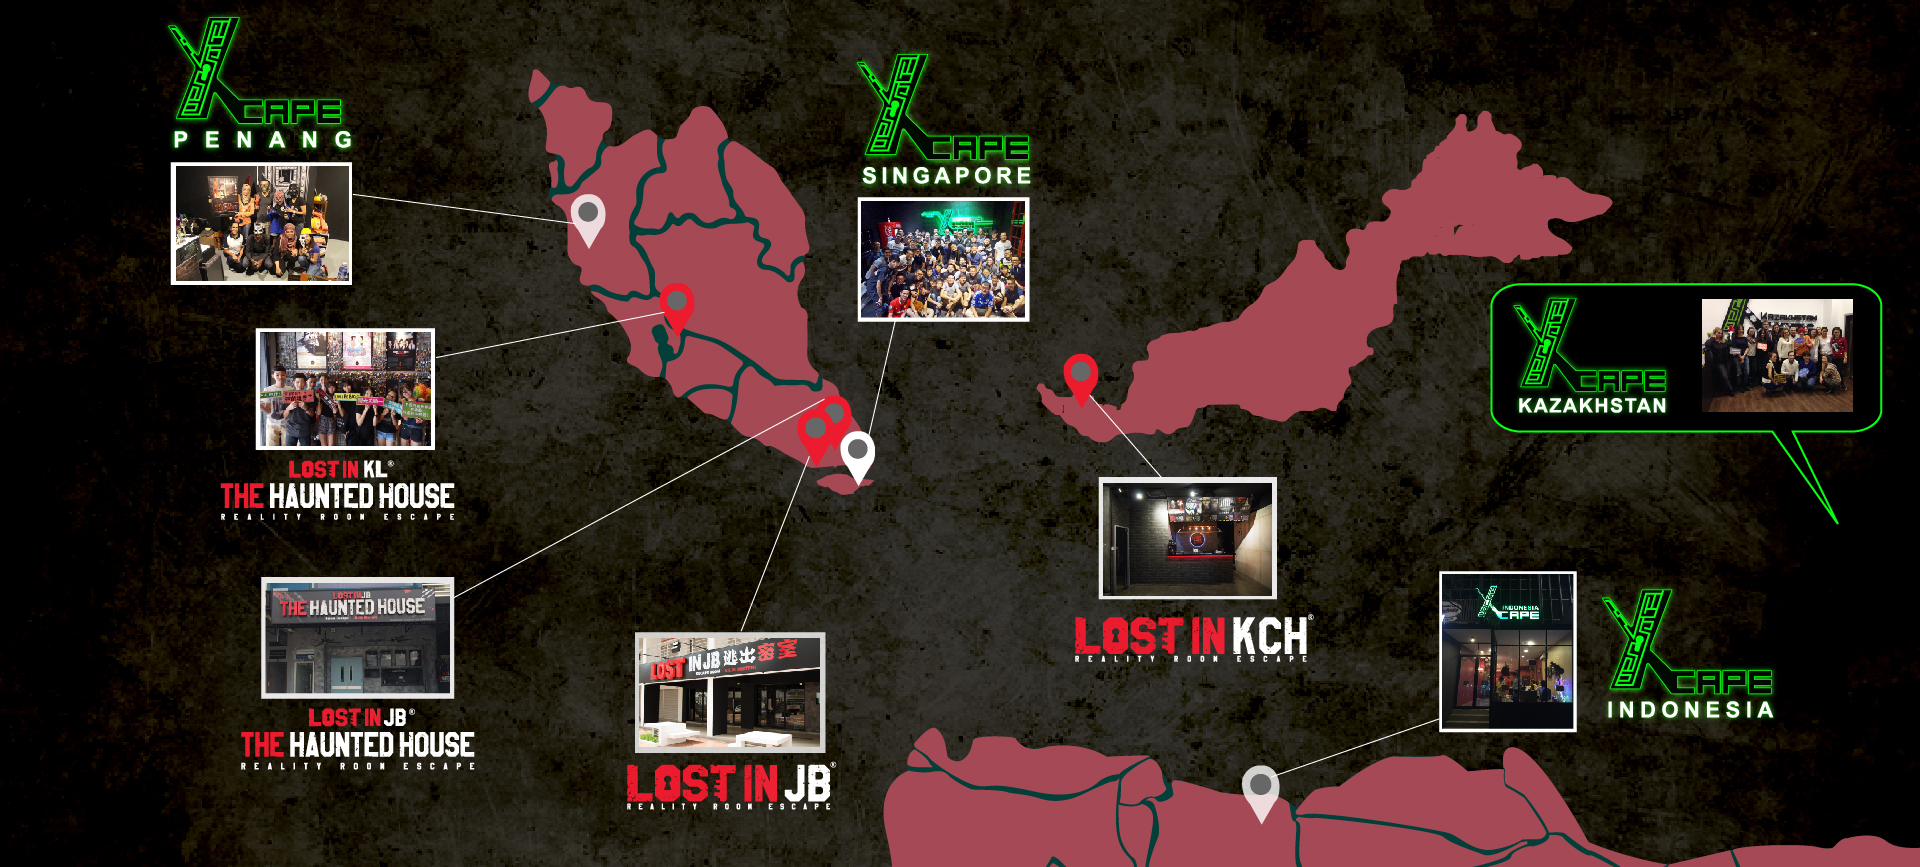 lost in jb - real escape room in johor bahru